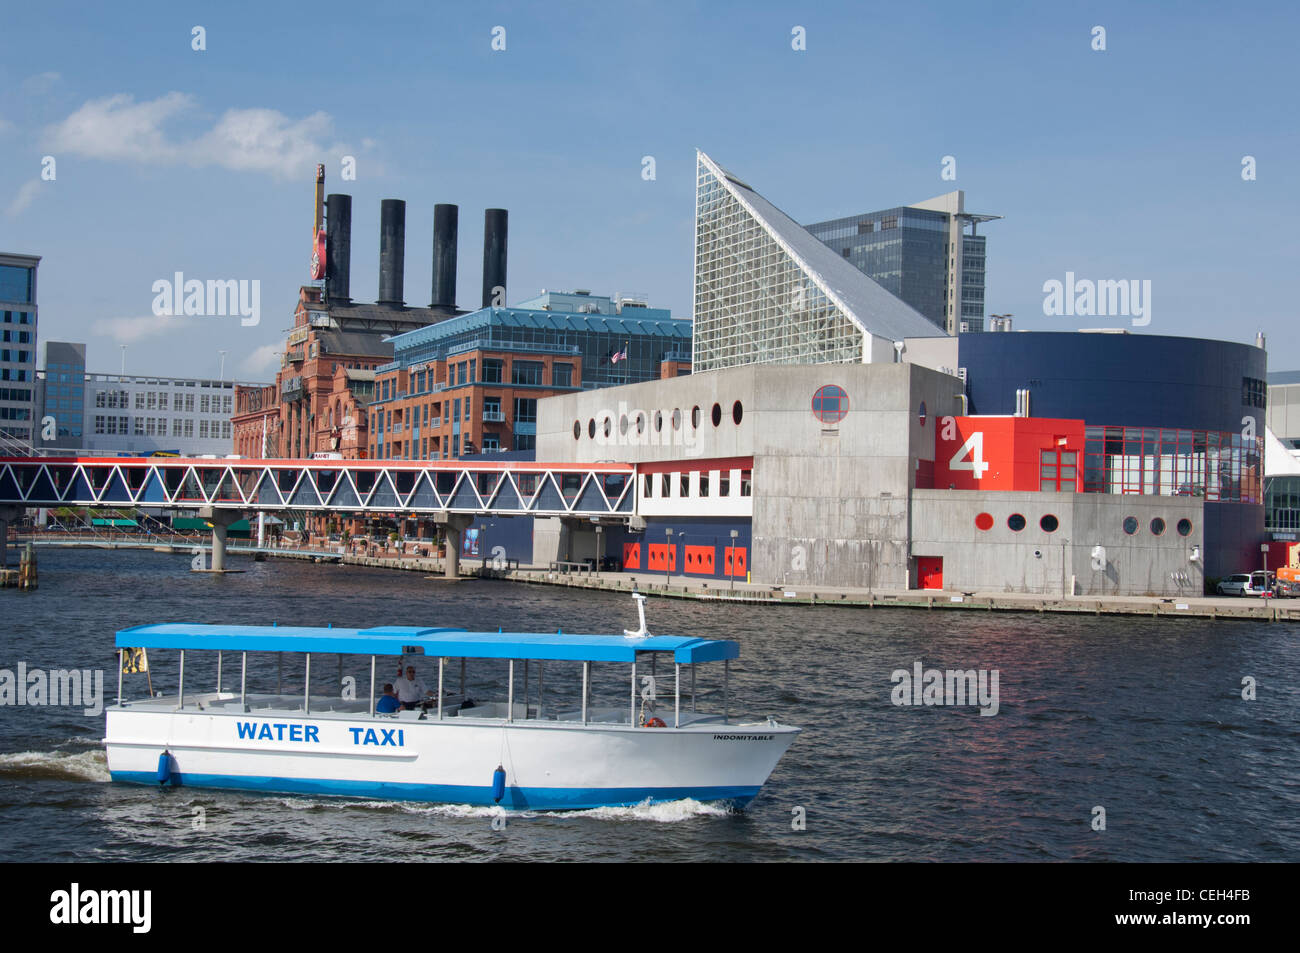 Maryland, Baltimore. National Historic Seaport of Baltimore. National Aquarium of Baltimore. - Stock Image